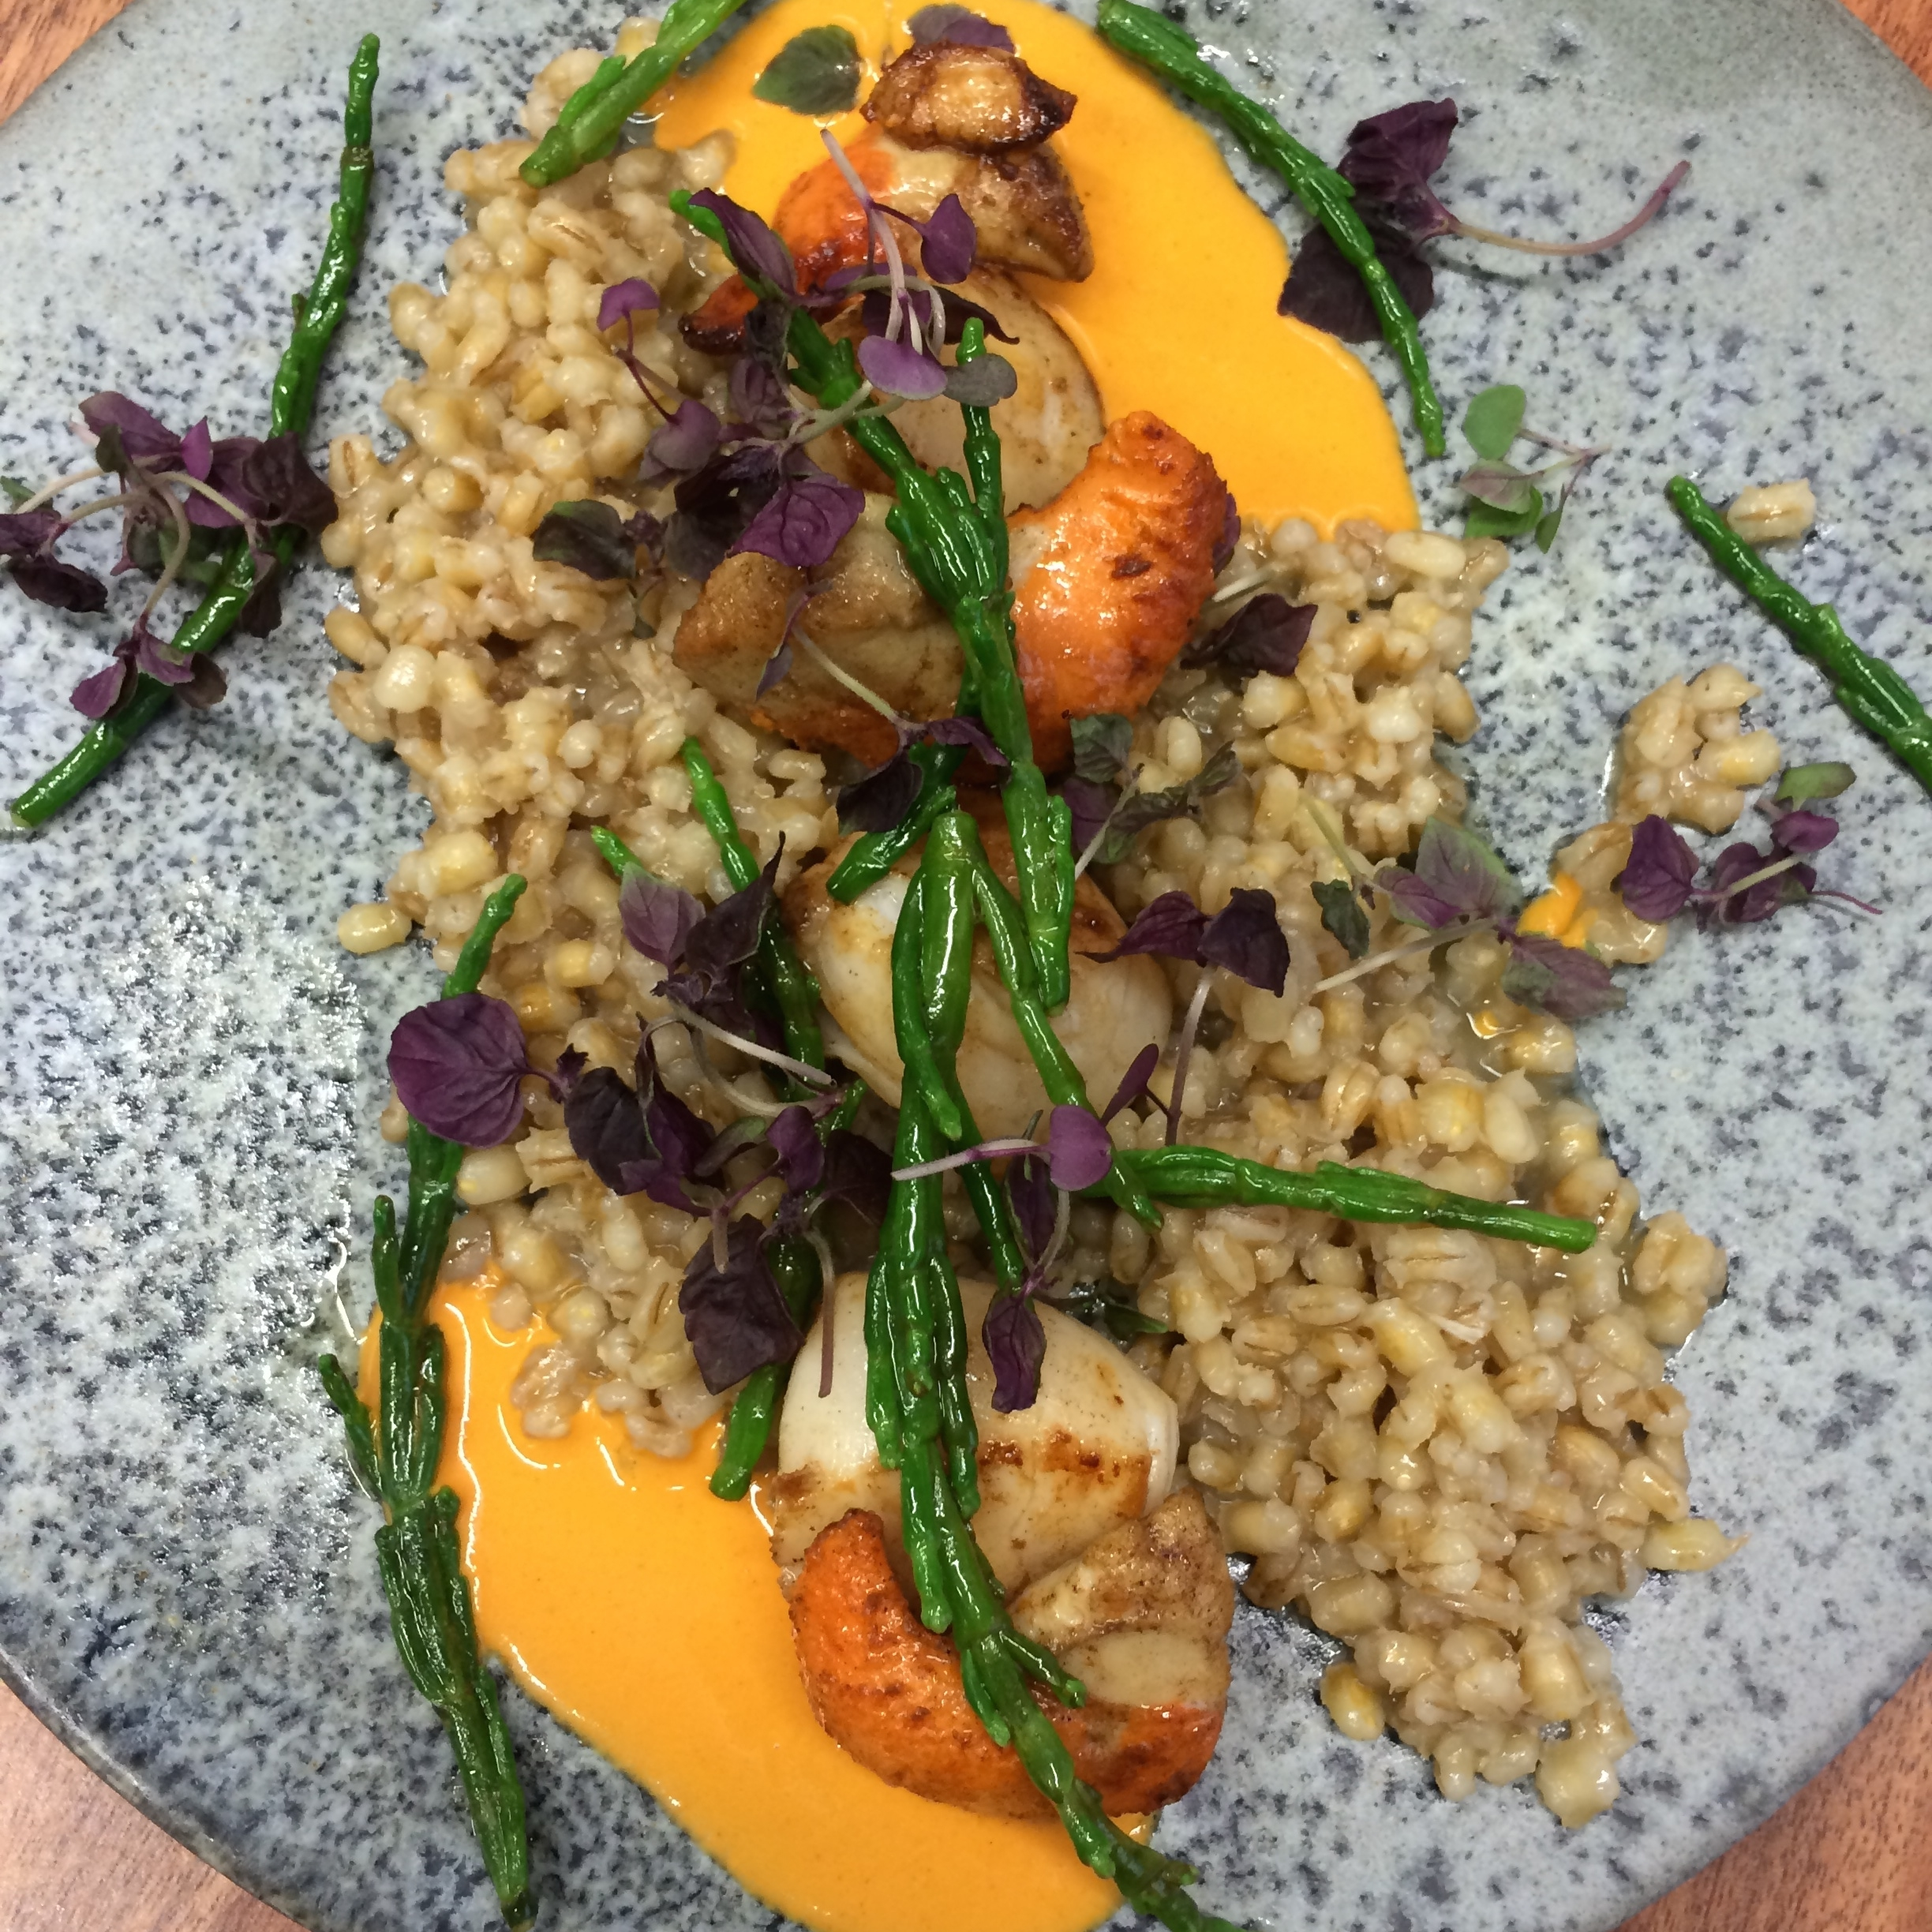 Seared scallops with barley salad and samphire